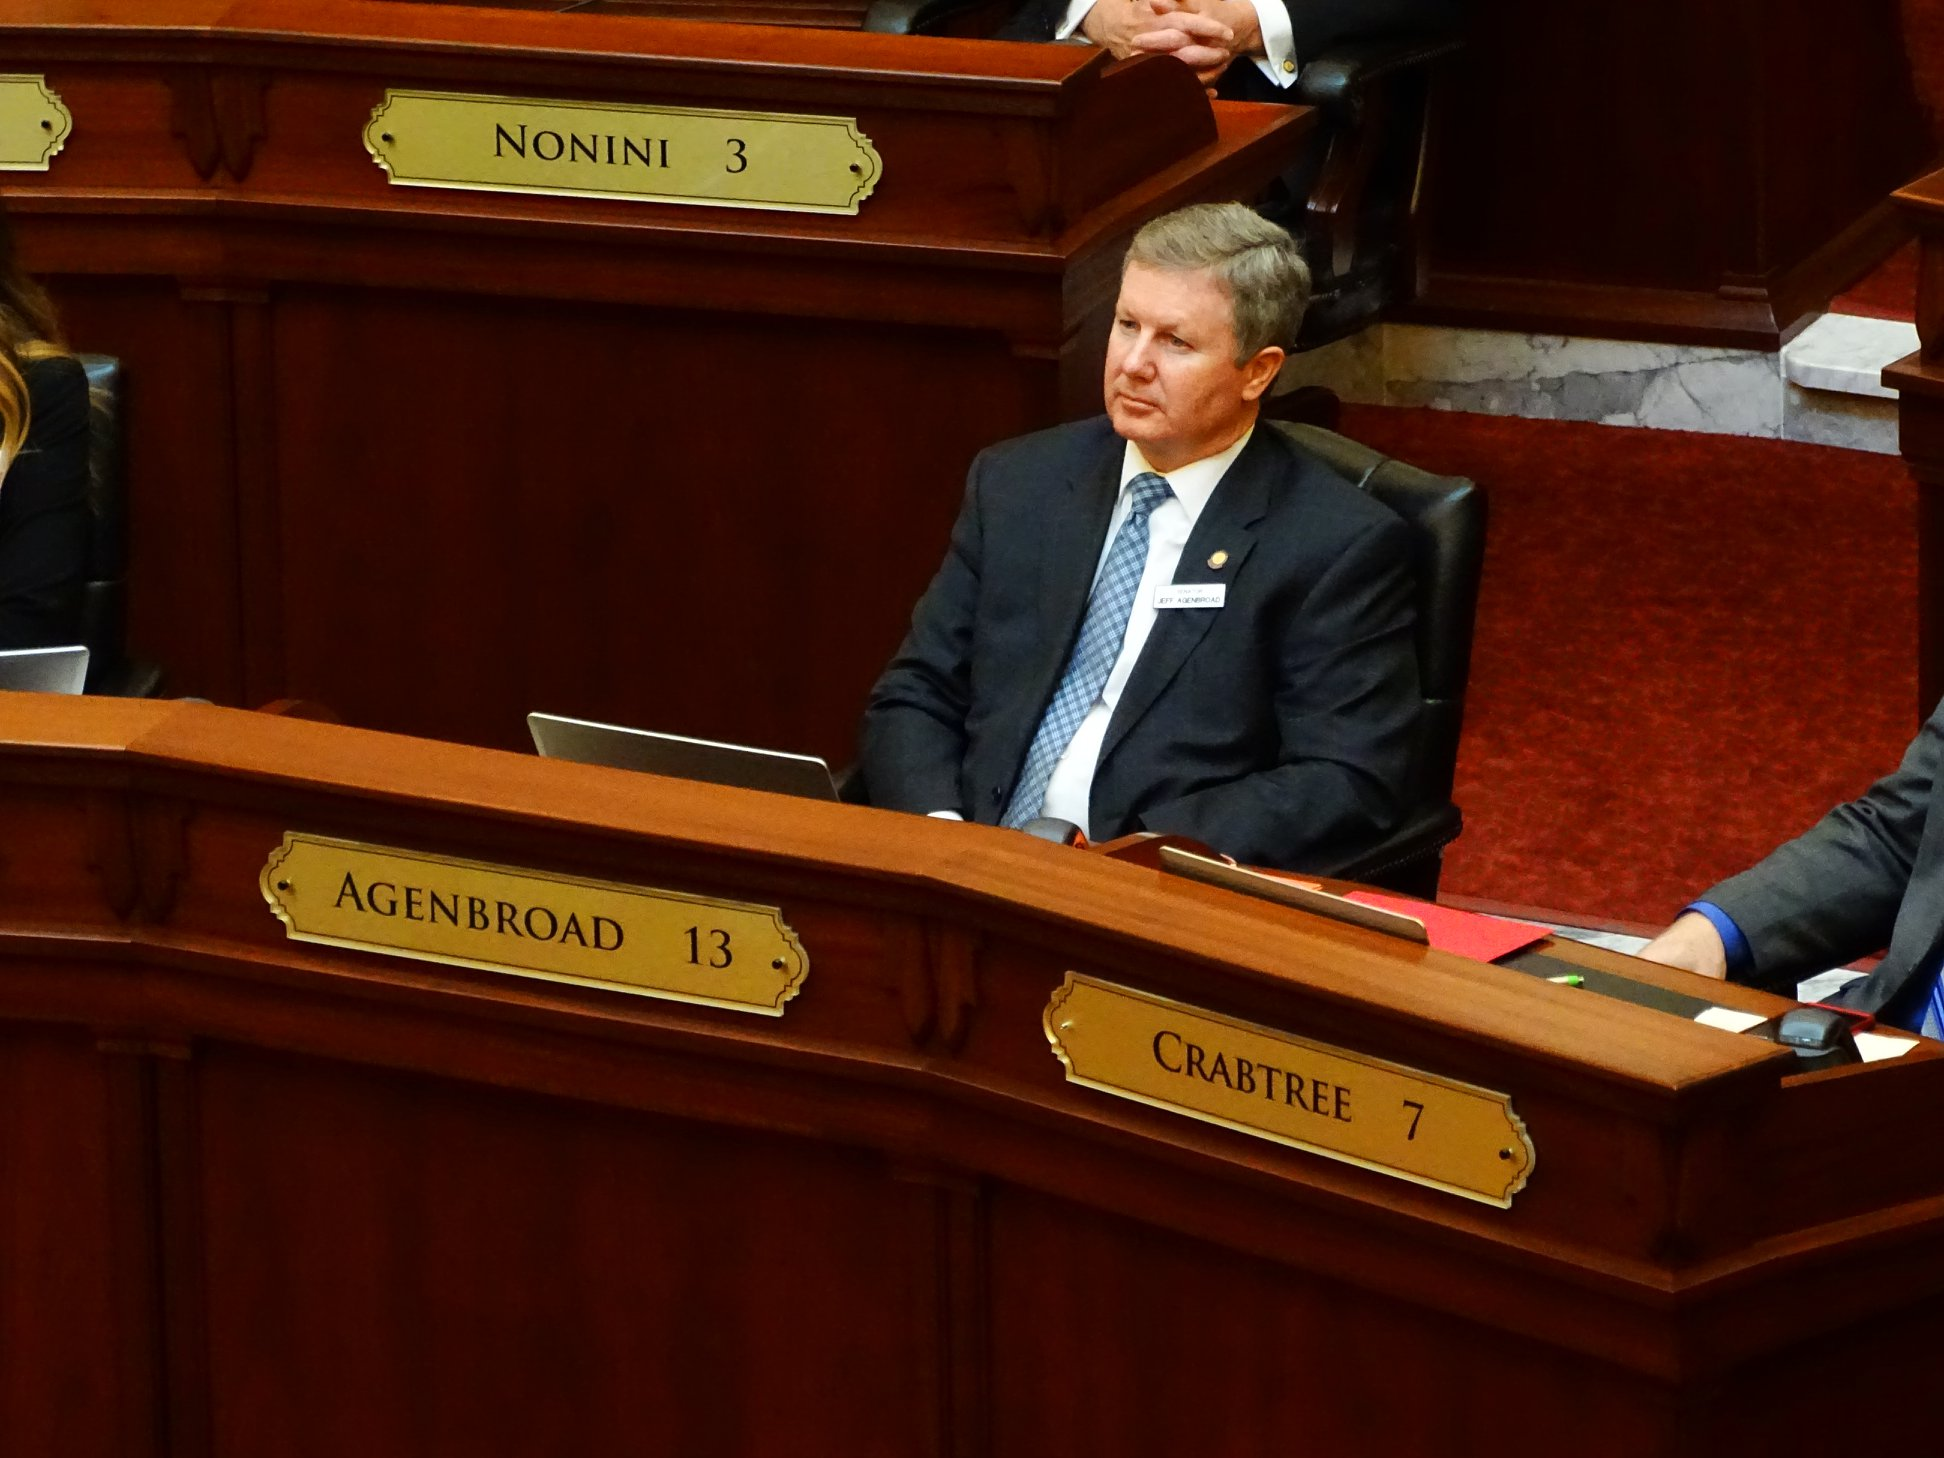 Senator Jeff Agenbroad in the Idaho Senate